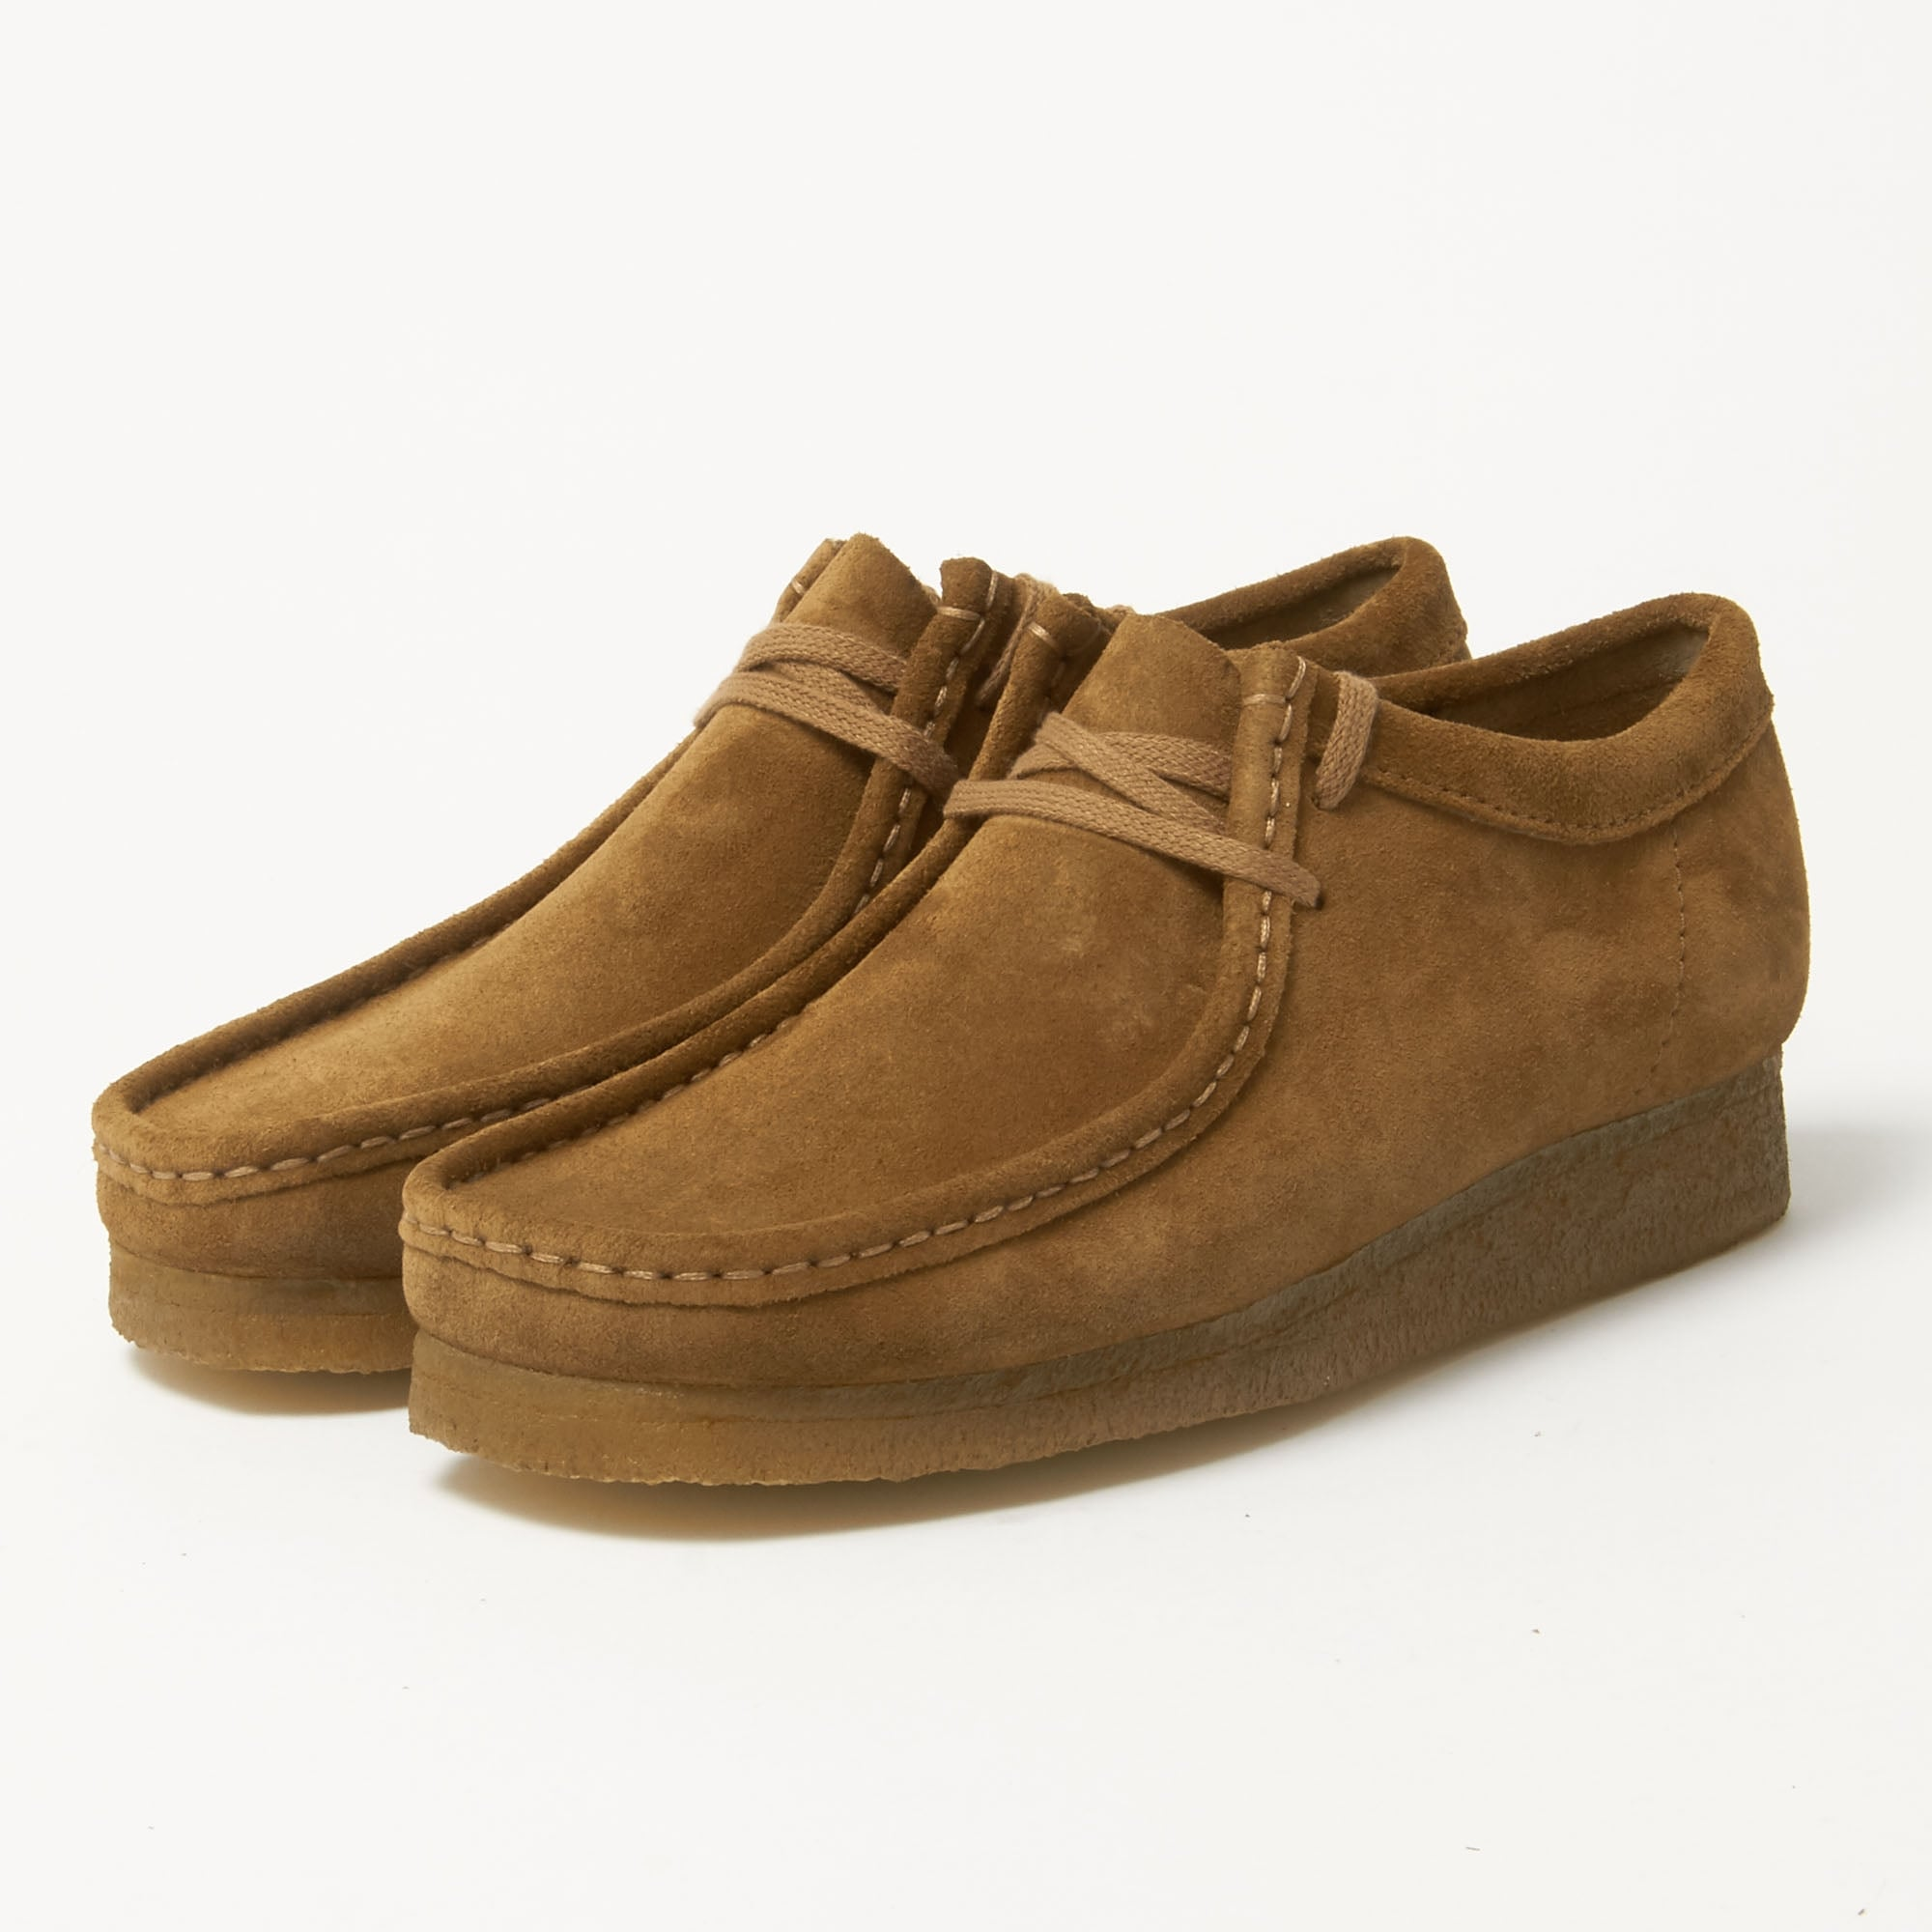 Clarks Originals Chaussures En Dentelle Wallabee Up En Daim Cola - Tan 6LfvukZ